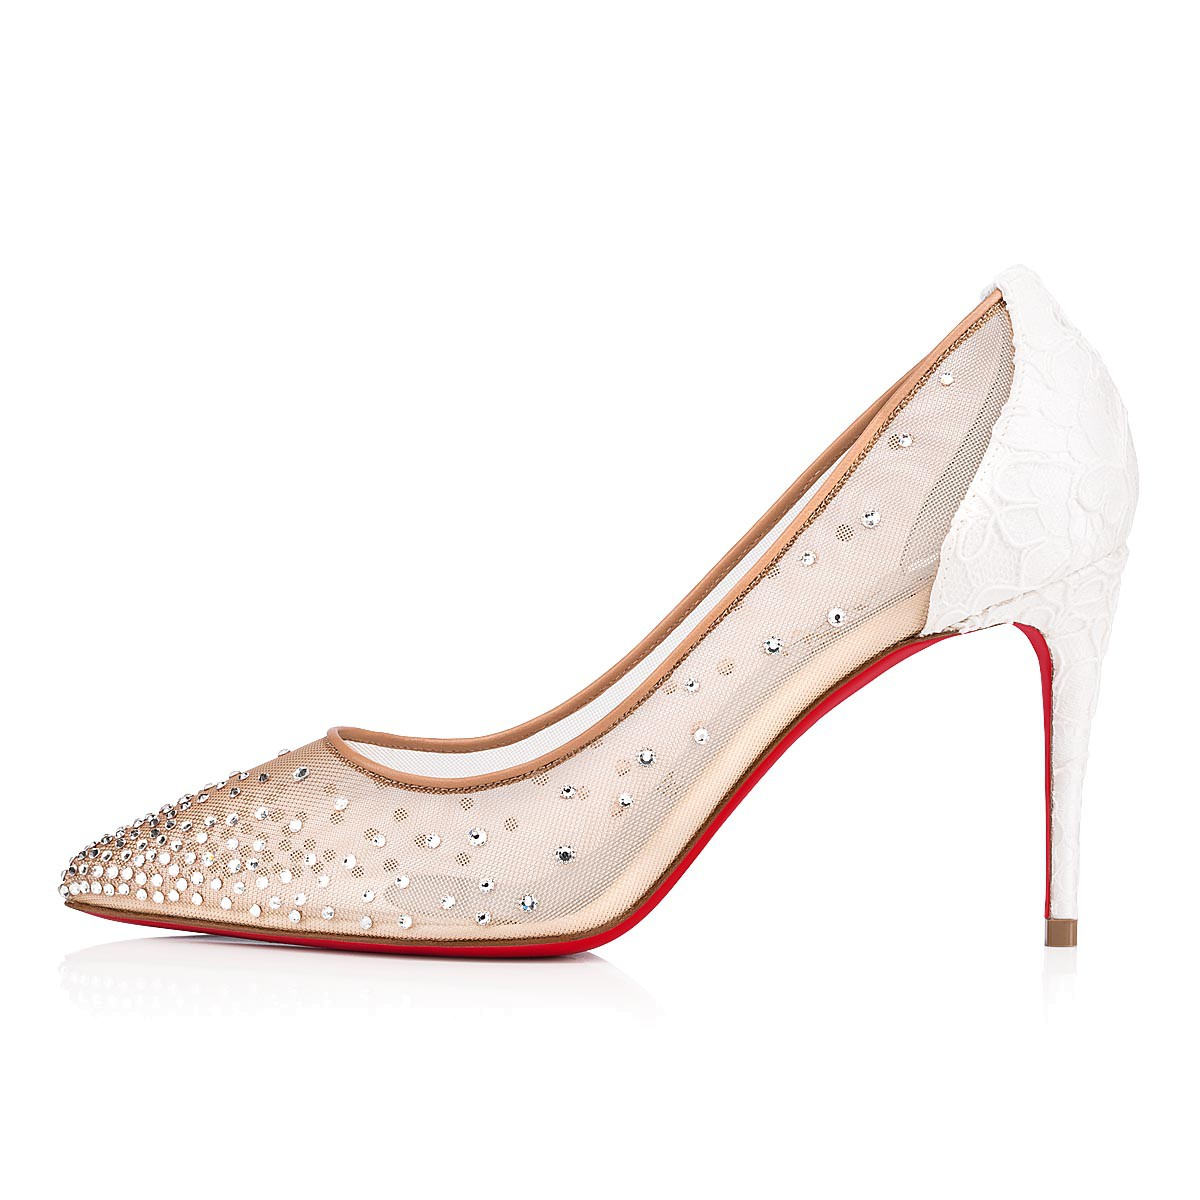 Souliers - Follies Strass - Christian Louboutin